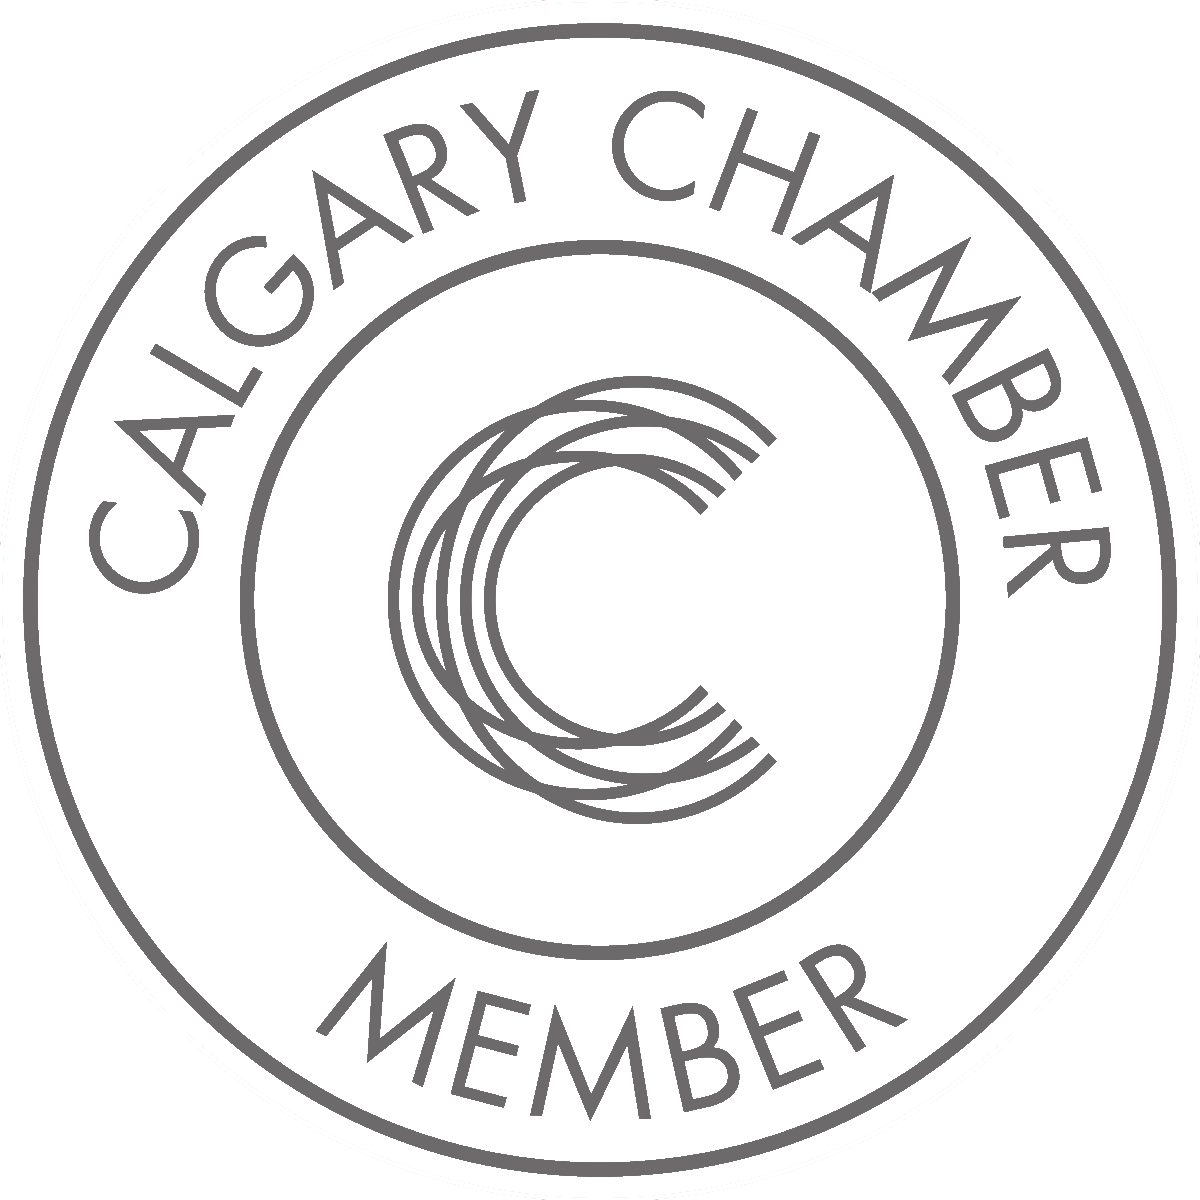 Proud member of the Calgary Chamber of Commerce